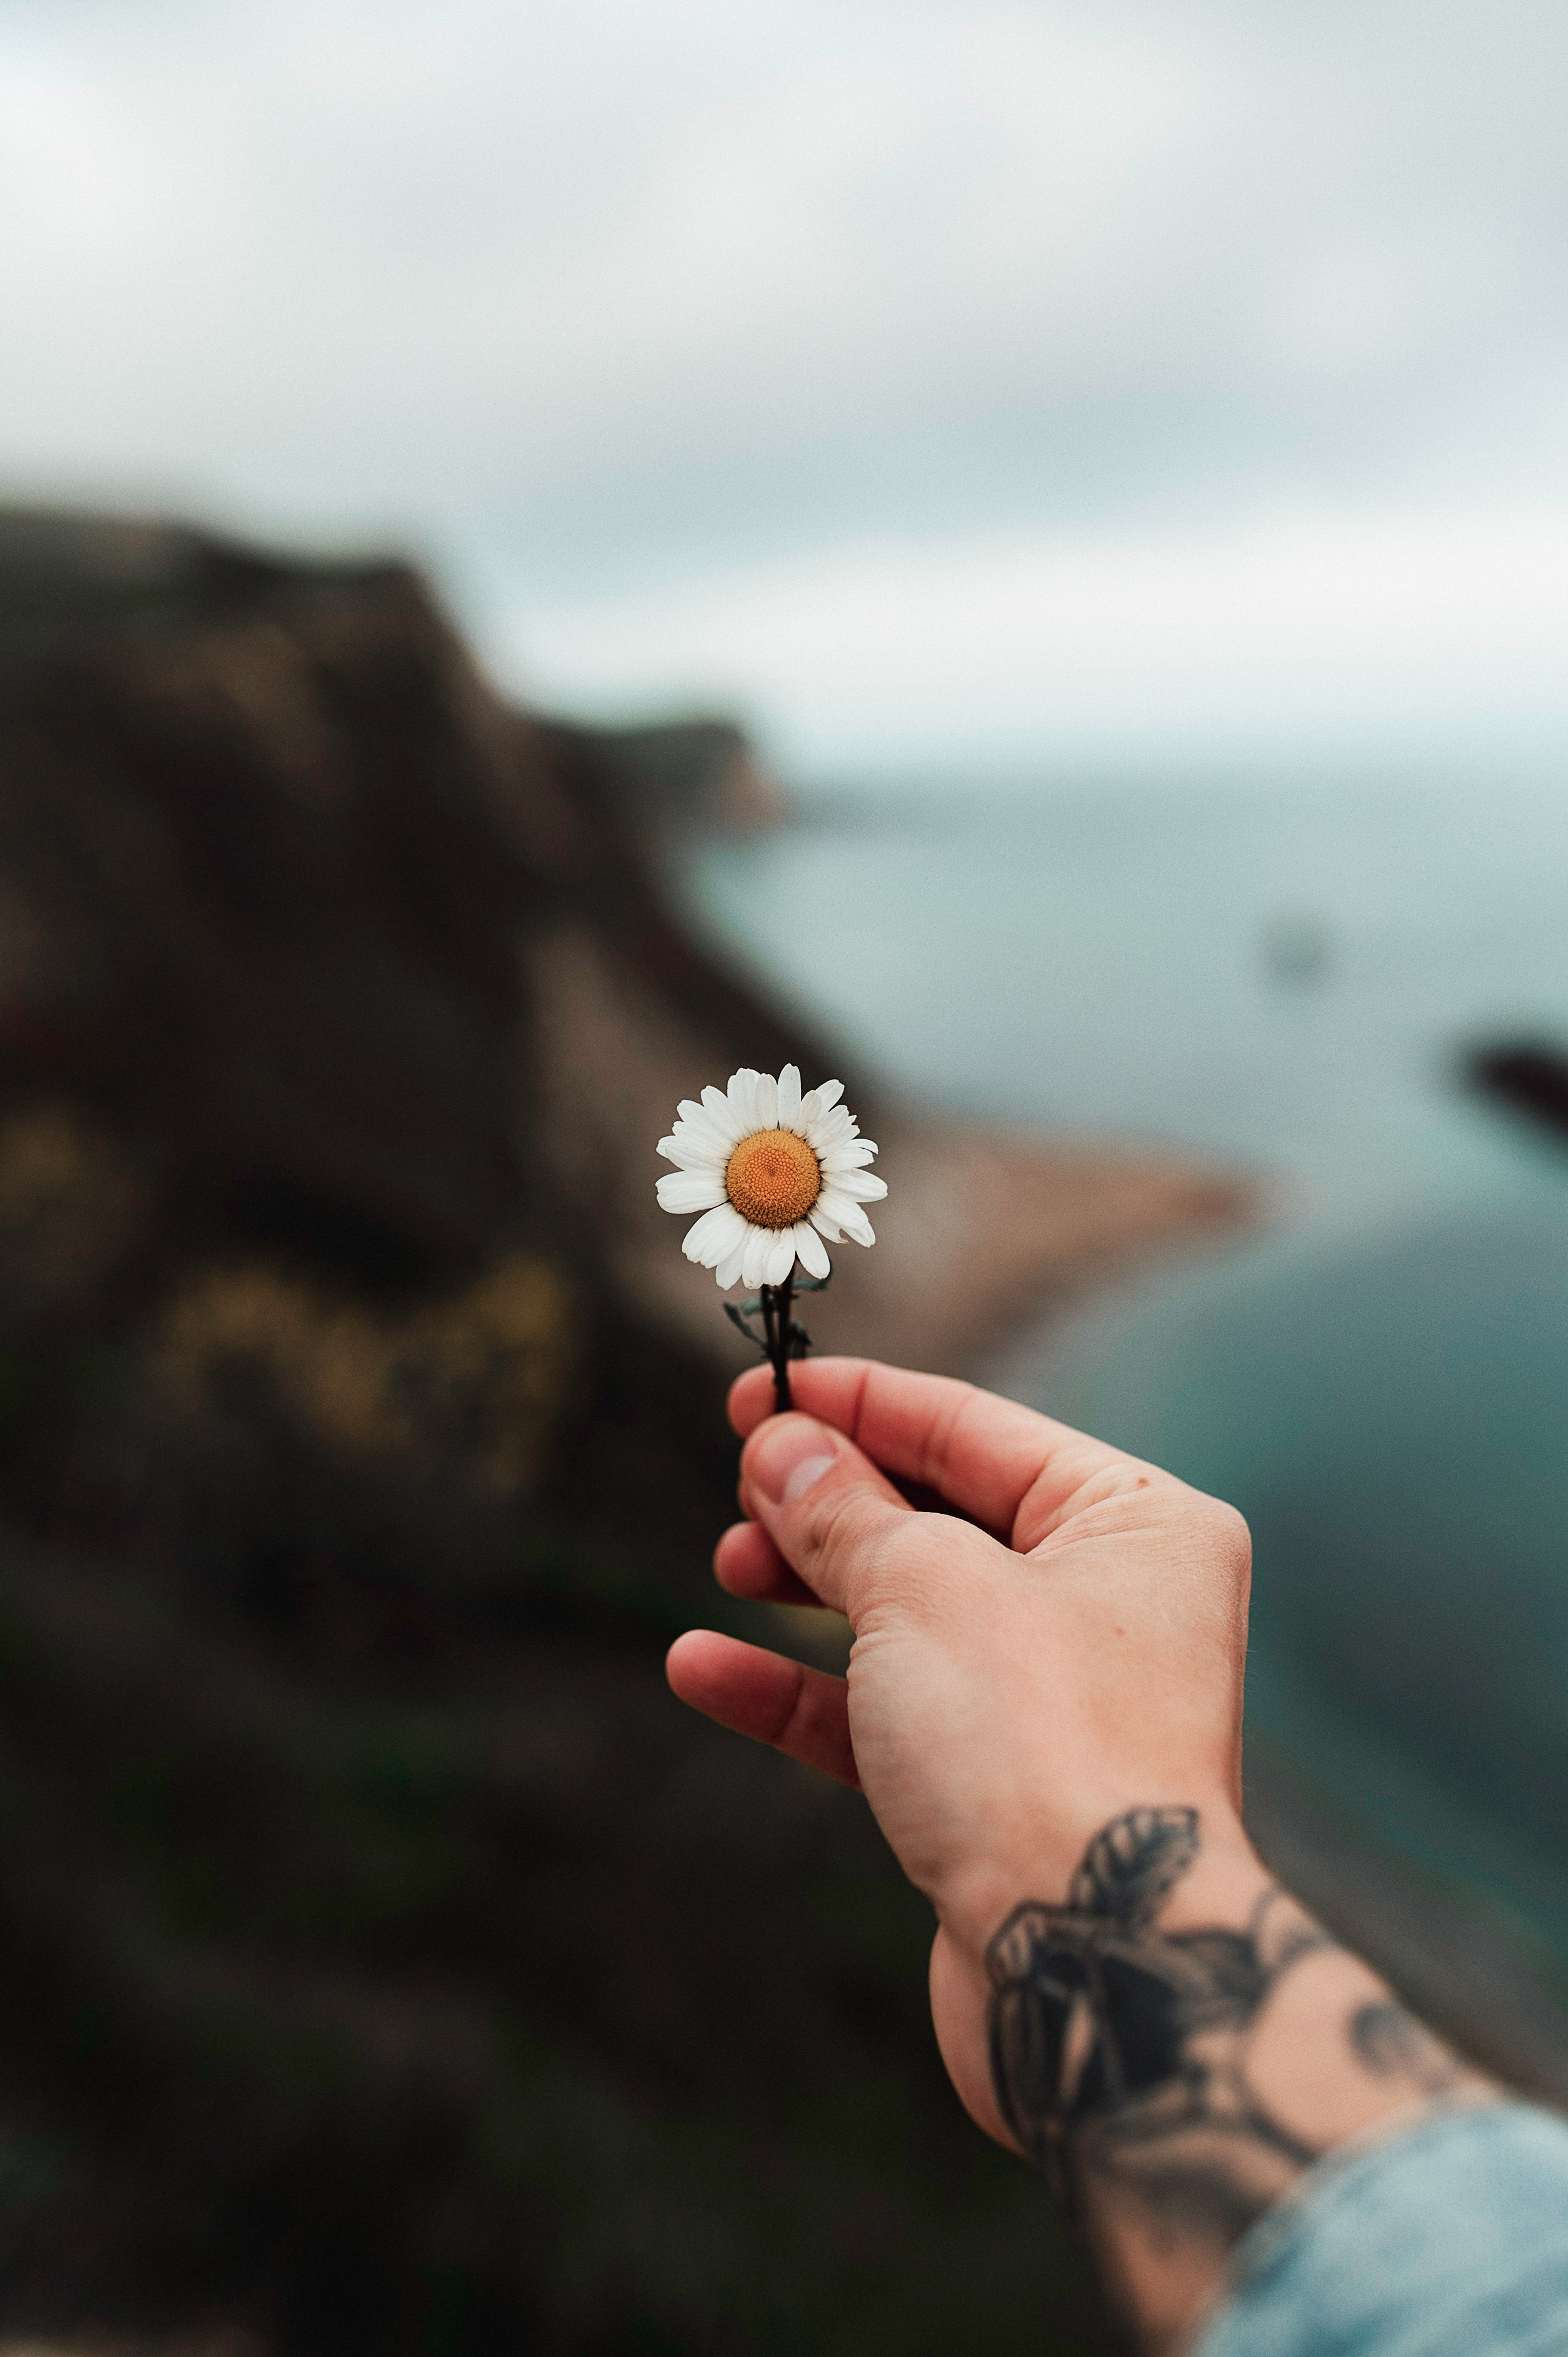 105955 download wallpaper Flowers, Camomile, Hand, Tattoo, Chamomile screensavers and pictures for free